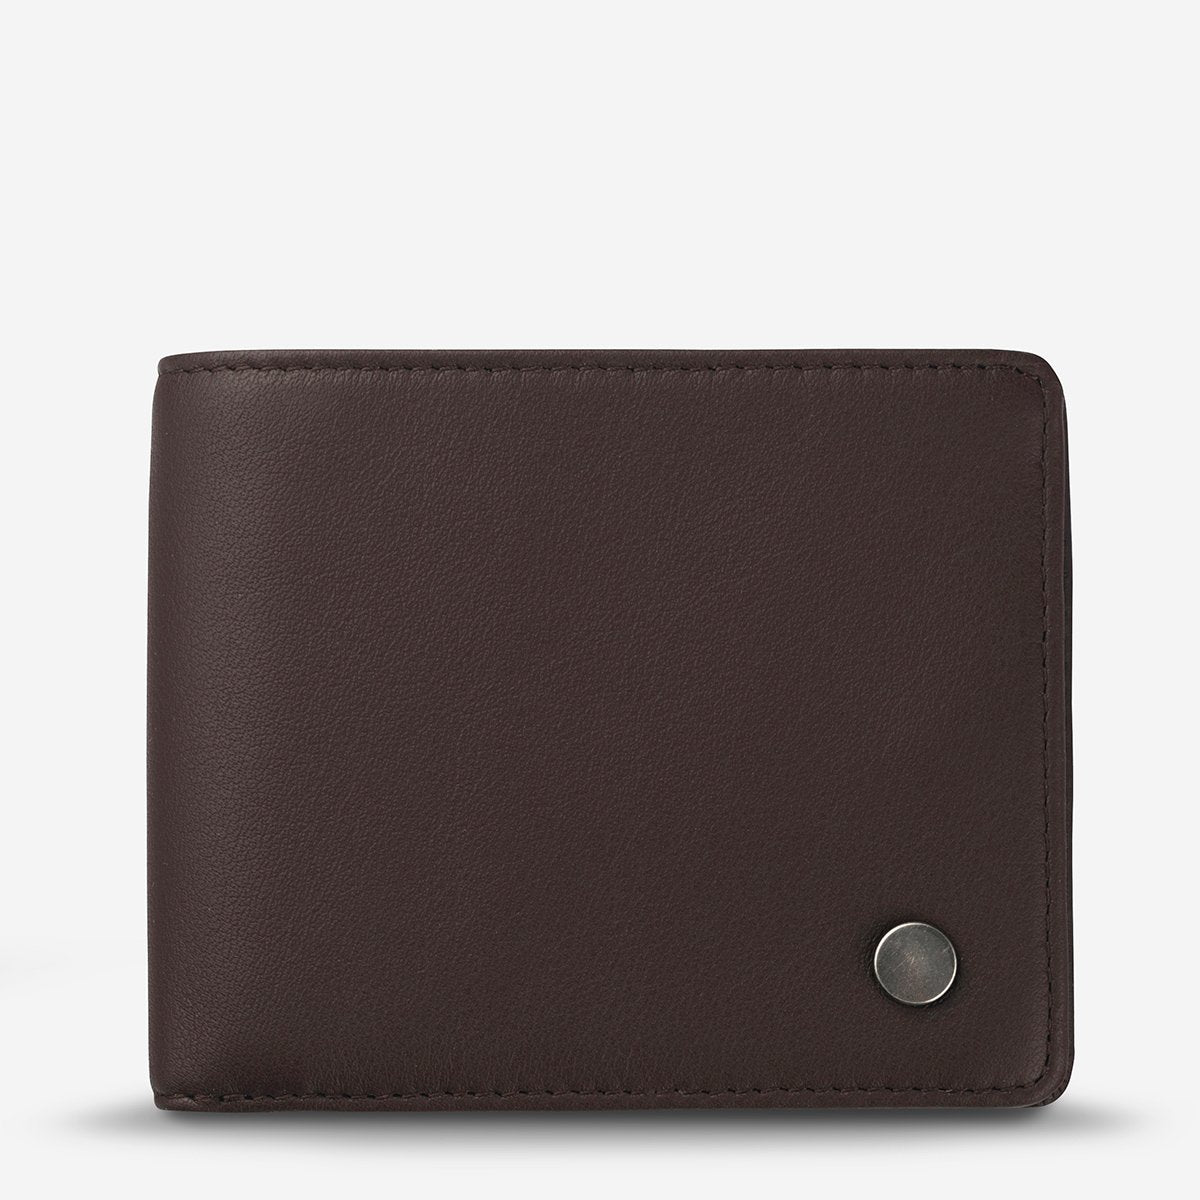 STATUS ANXIETY LEONARD WALLET CHOCOLATE